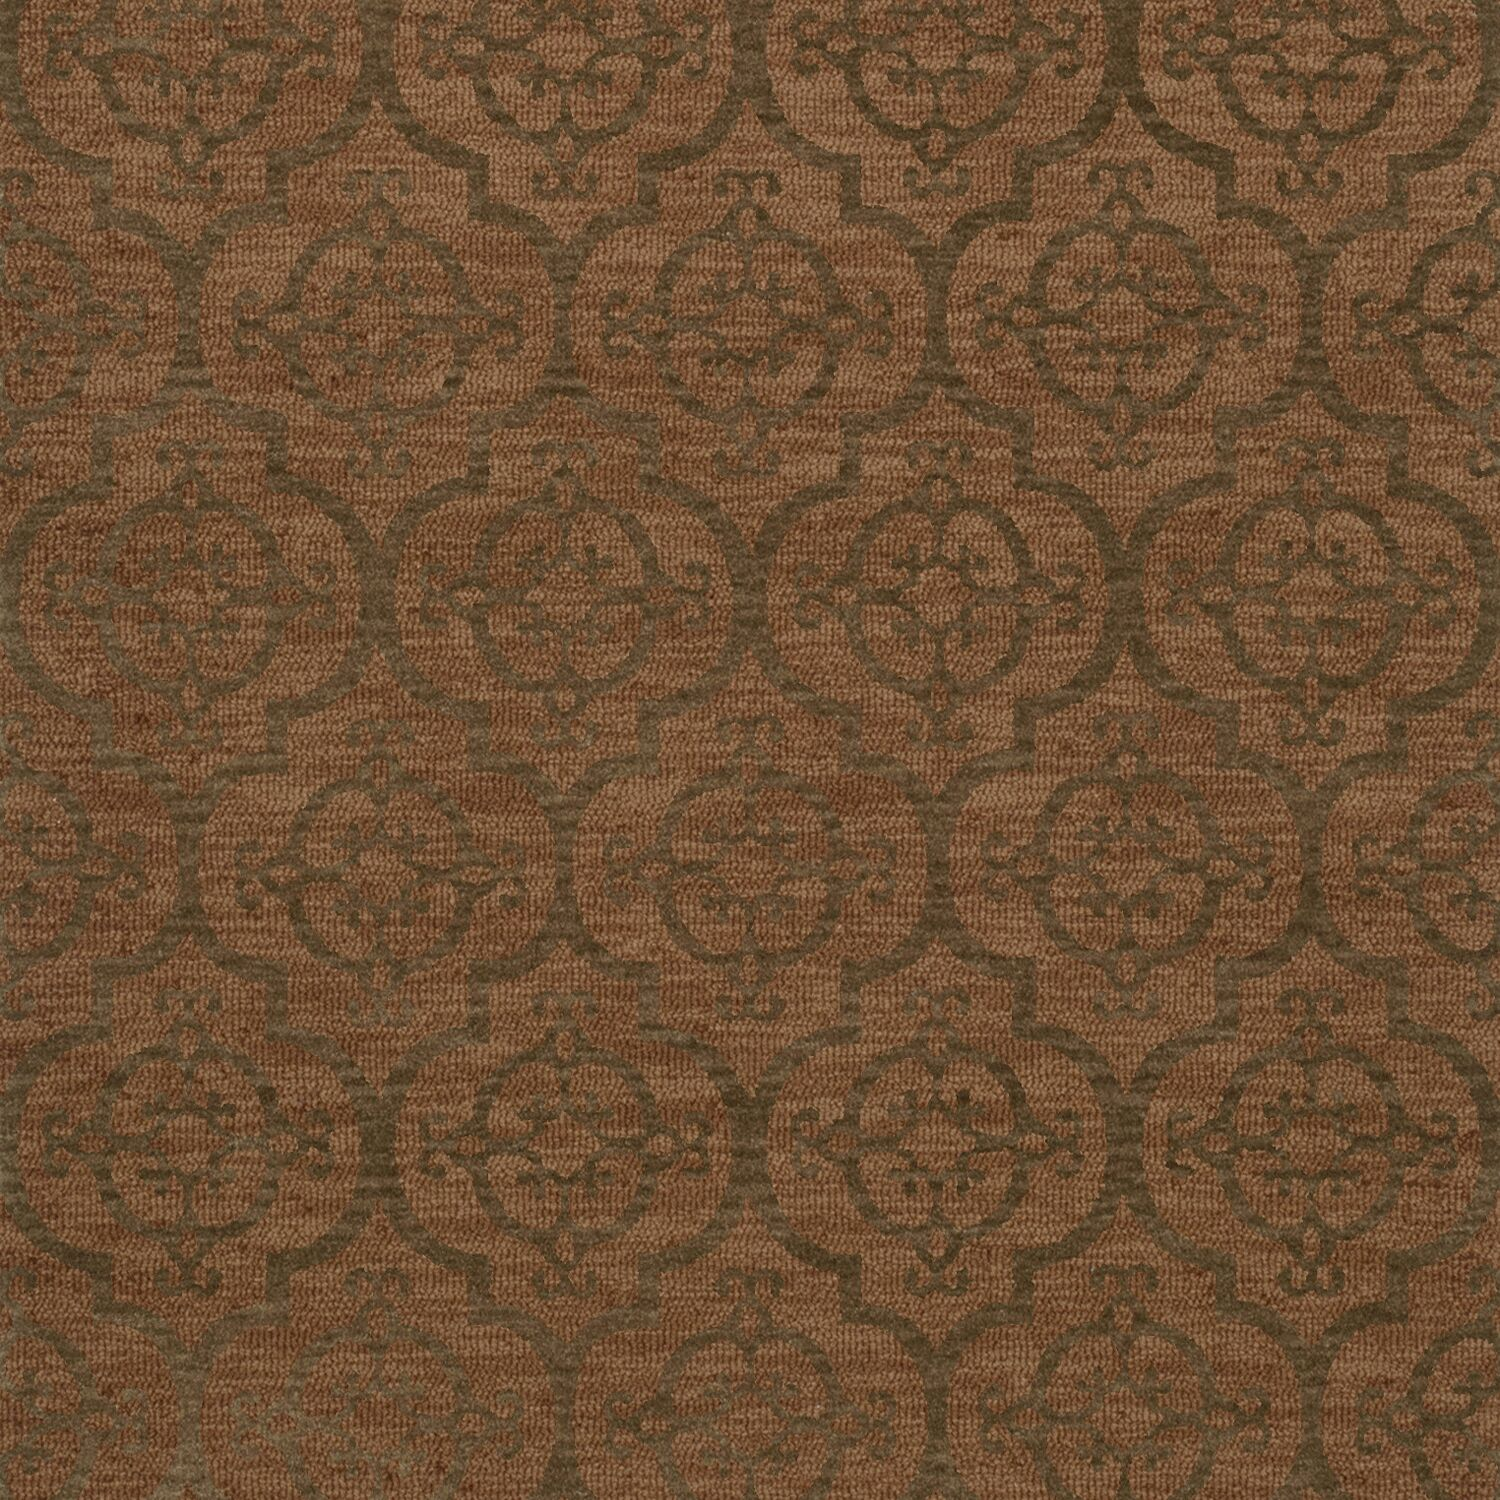 Bella Brown Area Rug Rug Size: Square 10'